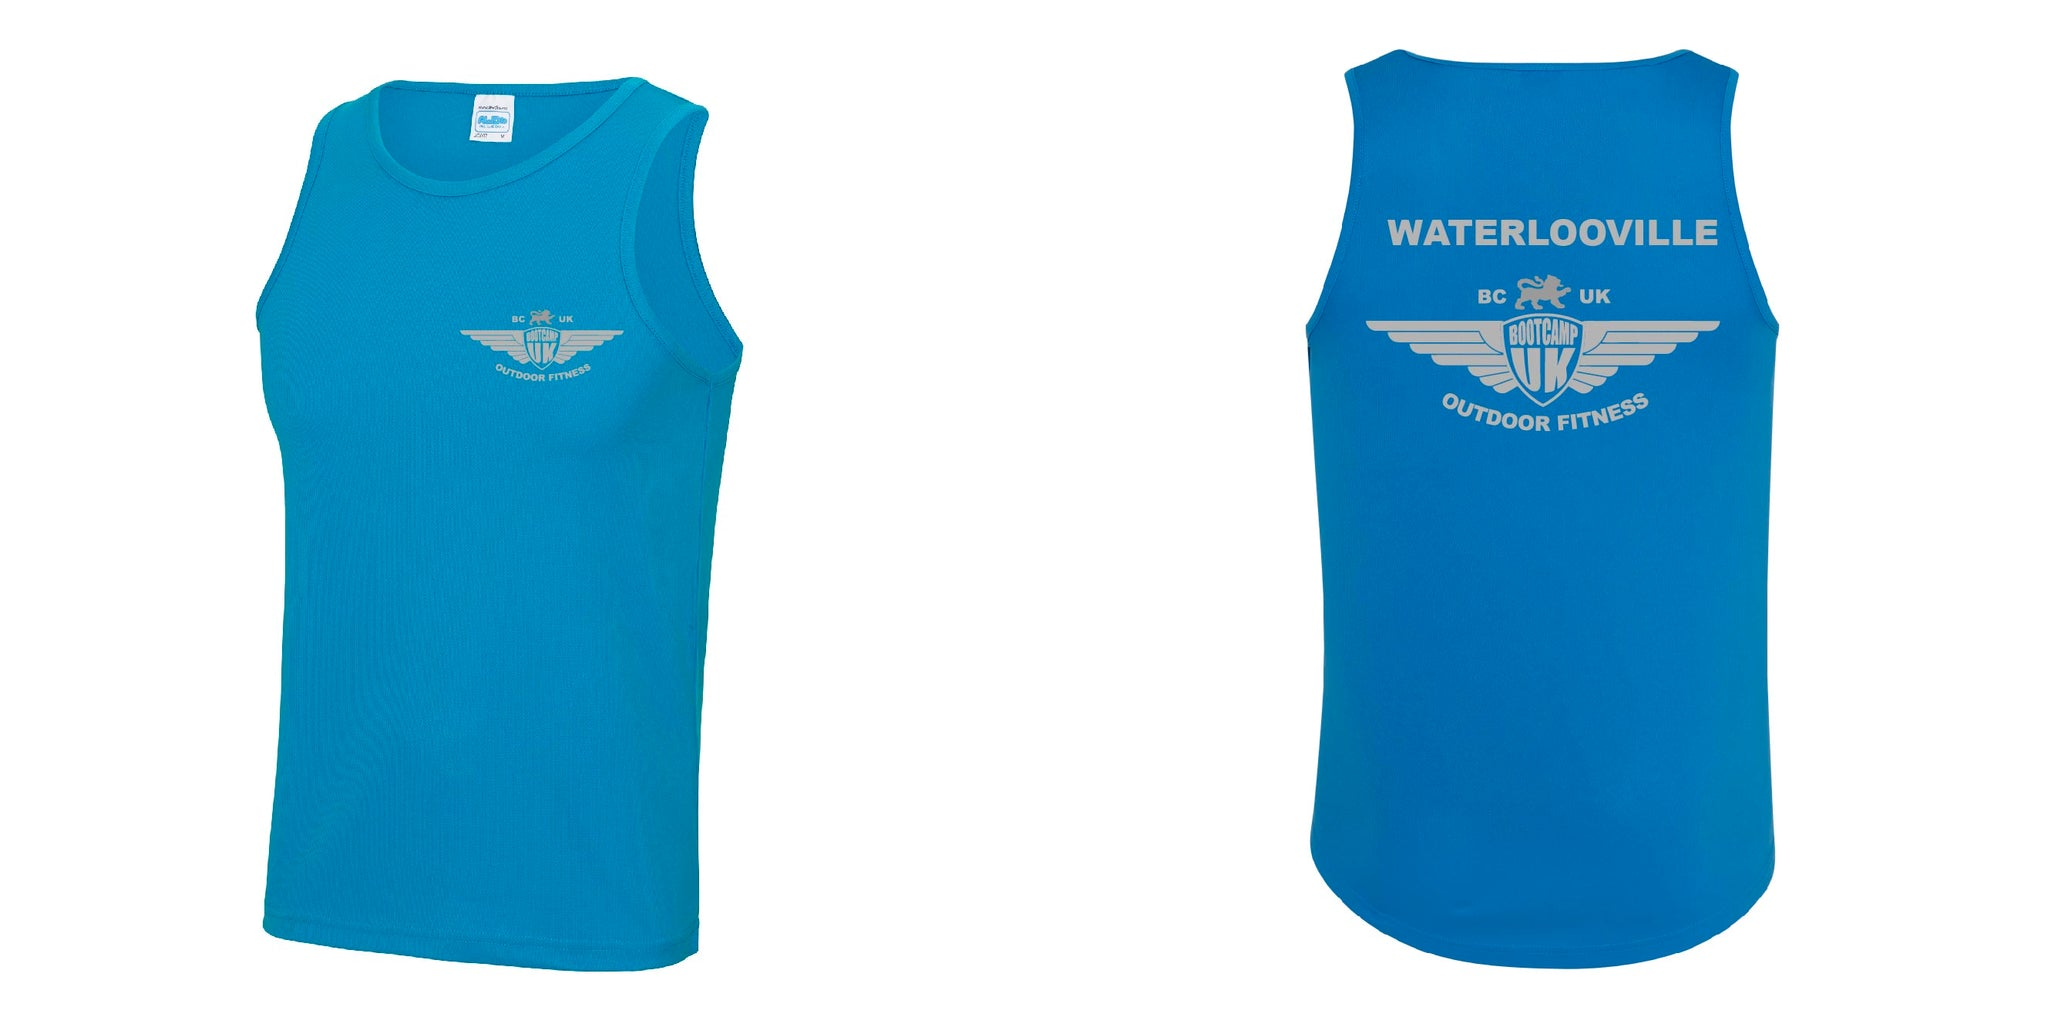 Waterlooville Men's Vest